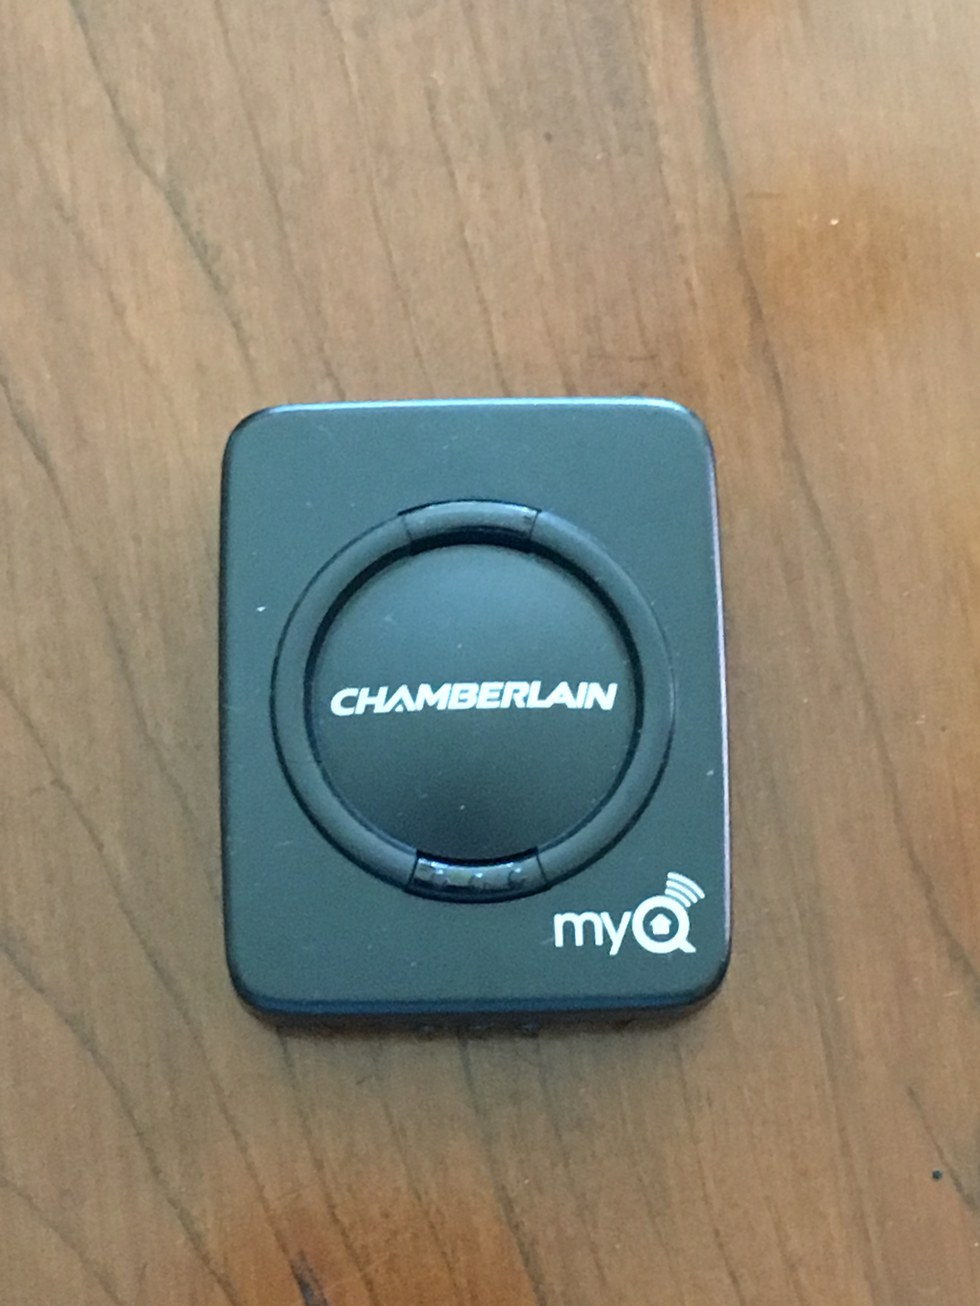 Chamberlain MyQ Smart Garage Door Opener Review - Gearbrain